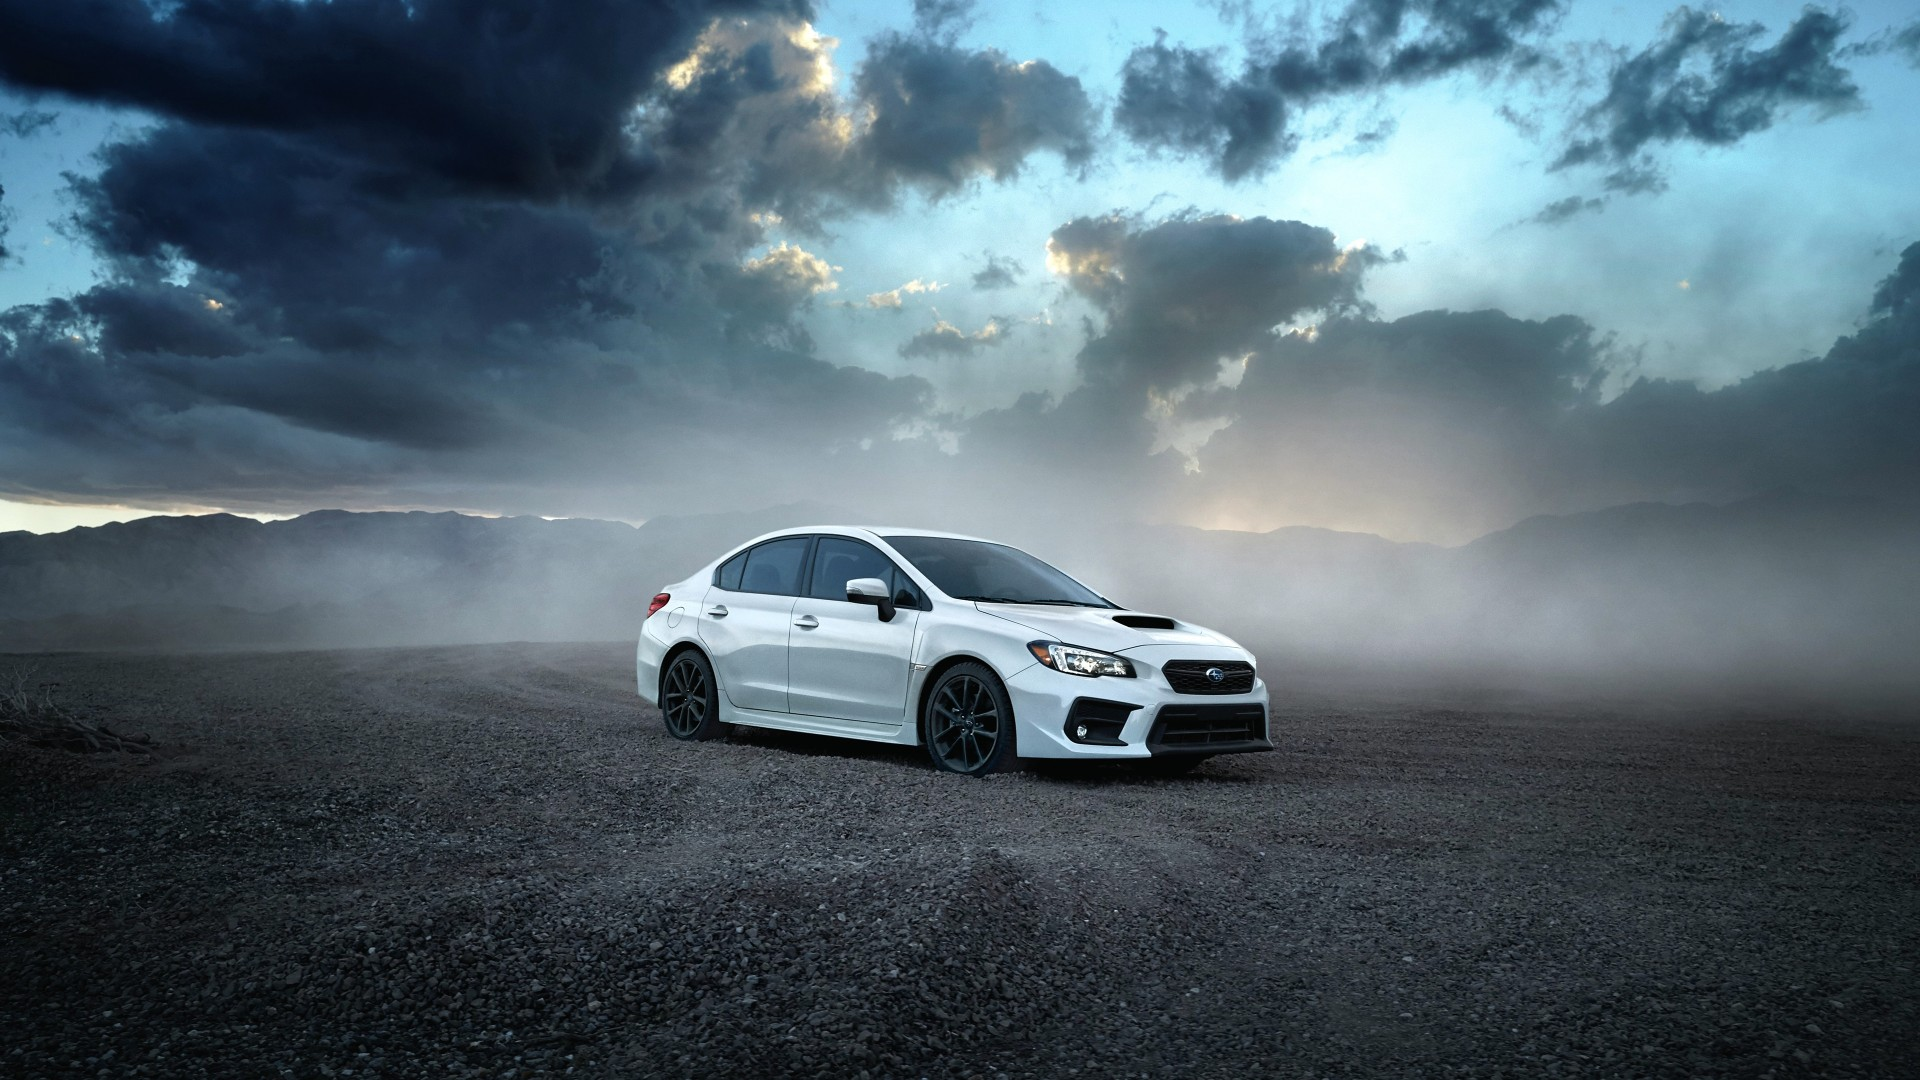 2018 Subaru WRX 4K 2 Wallpaper | HD Car Wallpapers | ID #10569